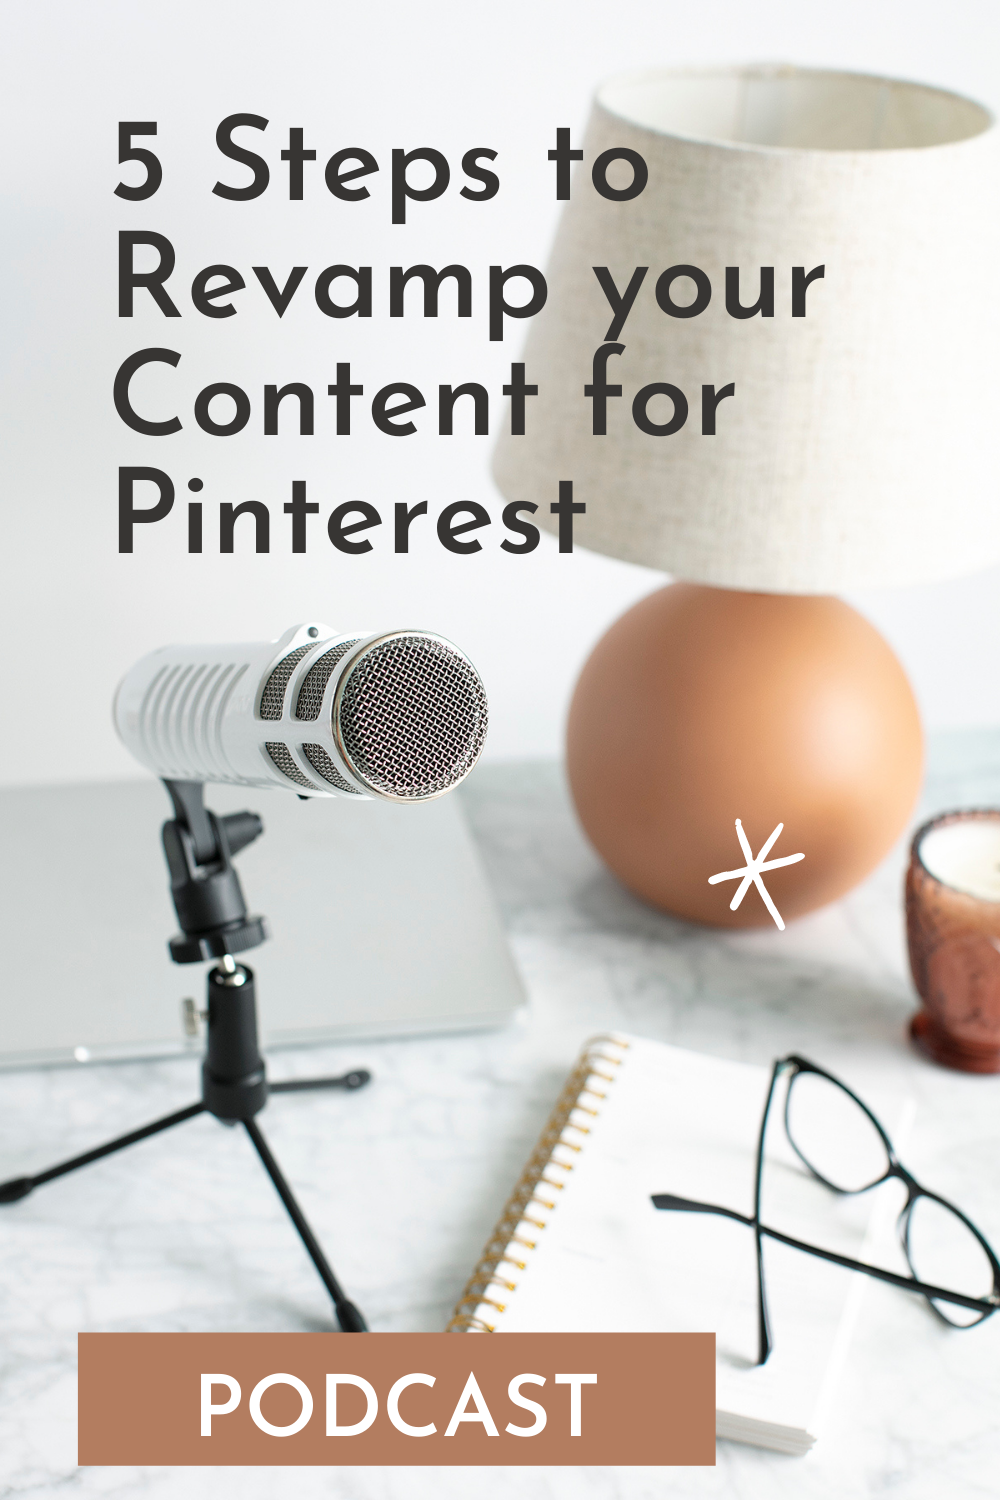 5 Steps to Revamp your Content for Pinterest